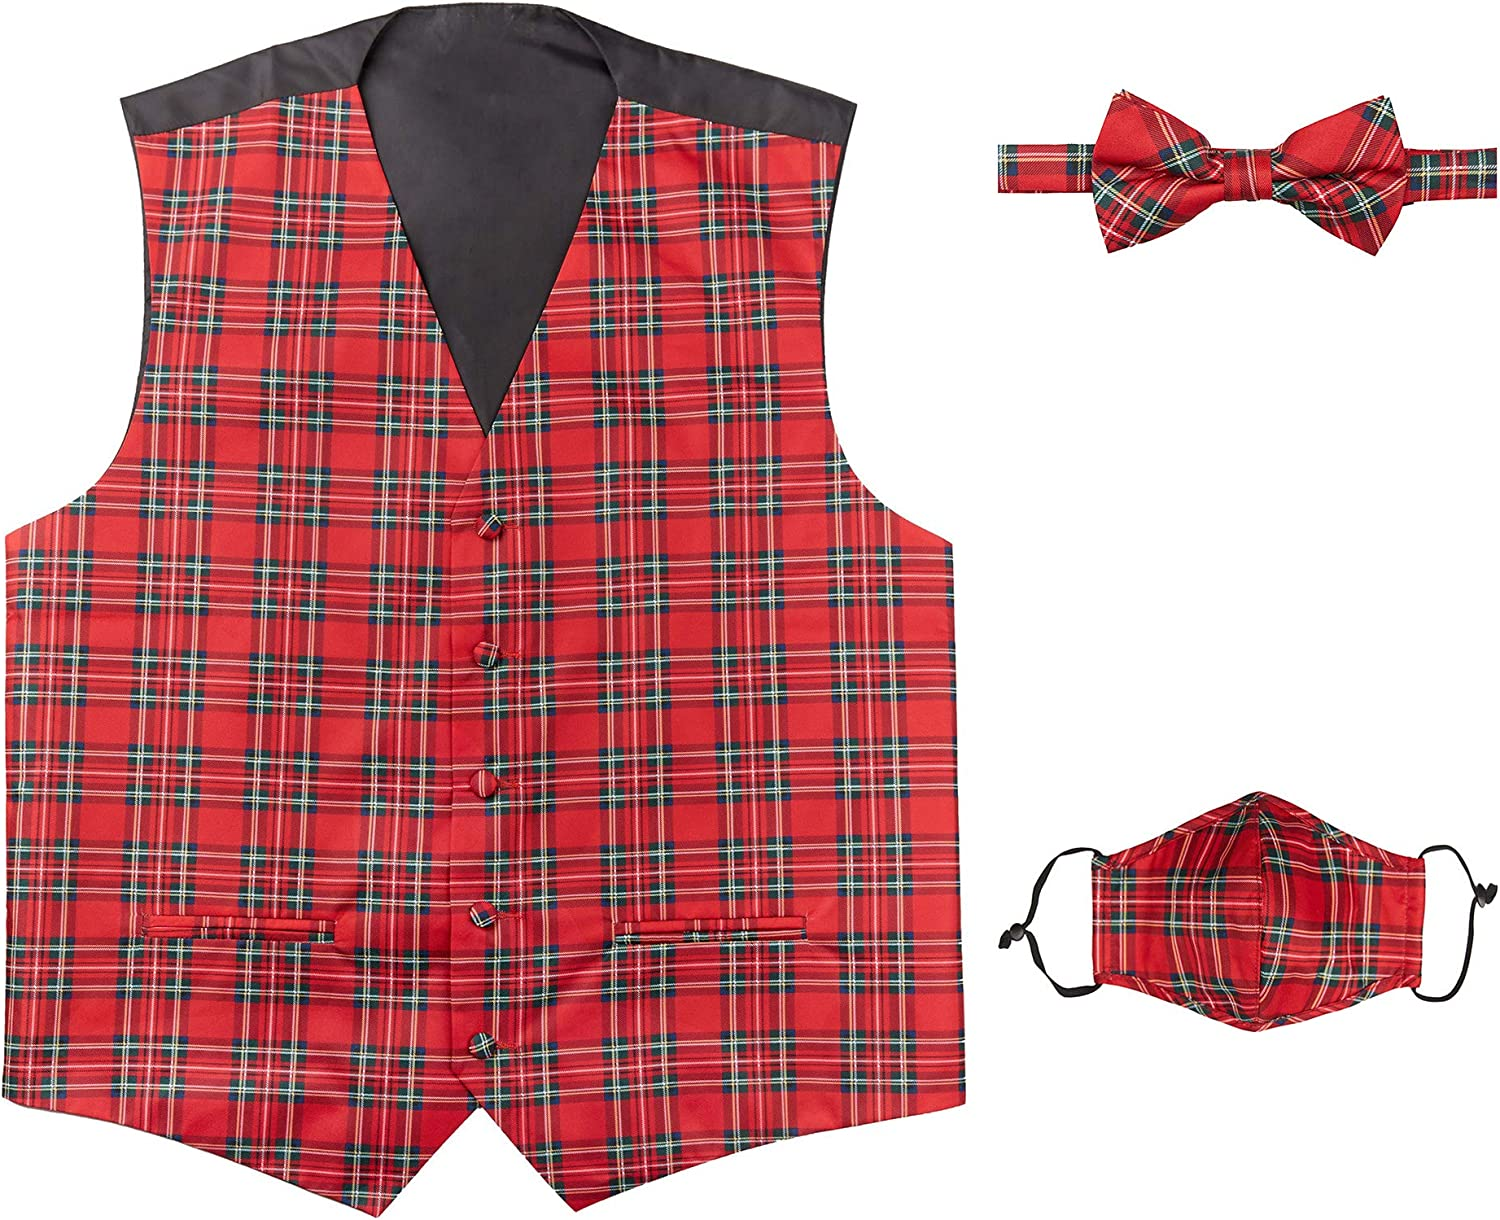 Jacob Alexander Max 46% OFF Red Ranking TOP2 Christmas Plaid Banded Pre-Tied Vest B Men's